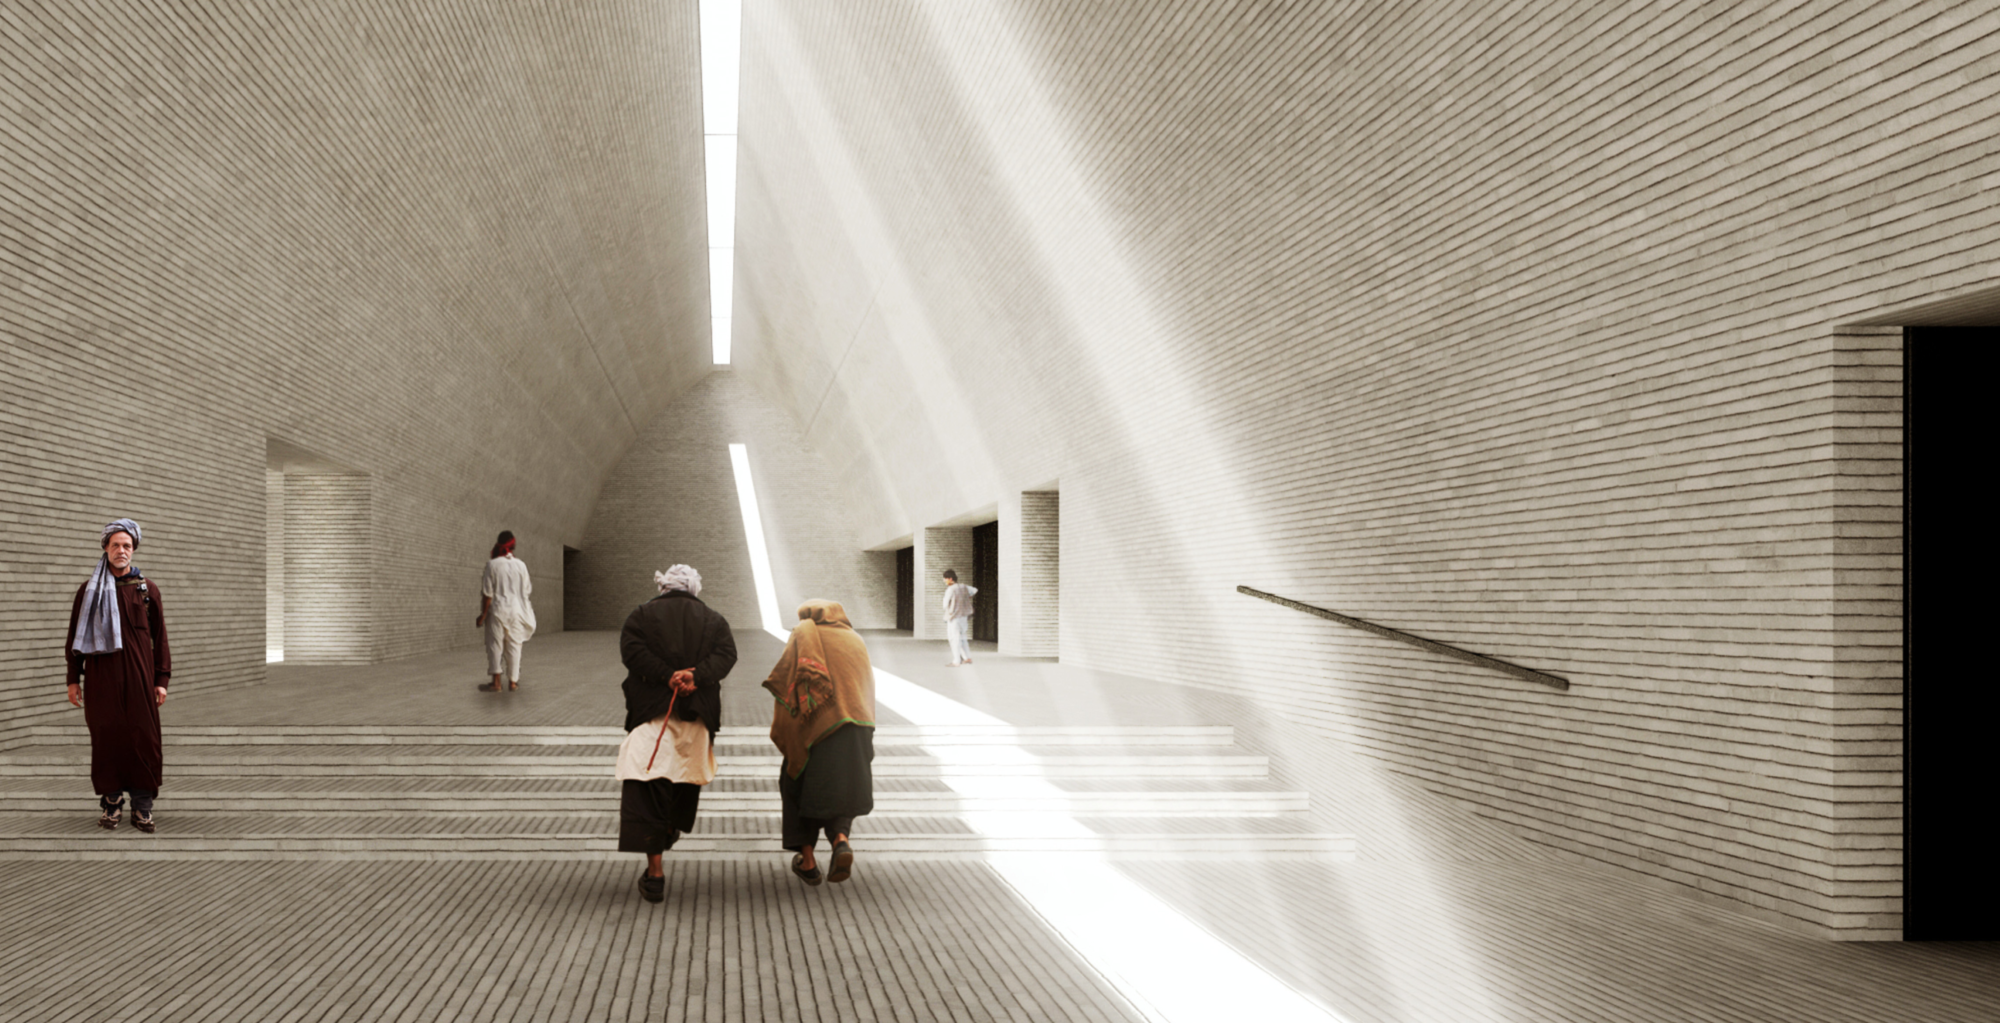 Winning Entry: Entry Hall. Image Courtesy of UNESCO